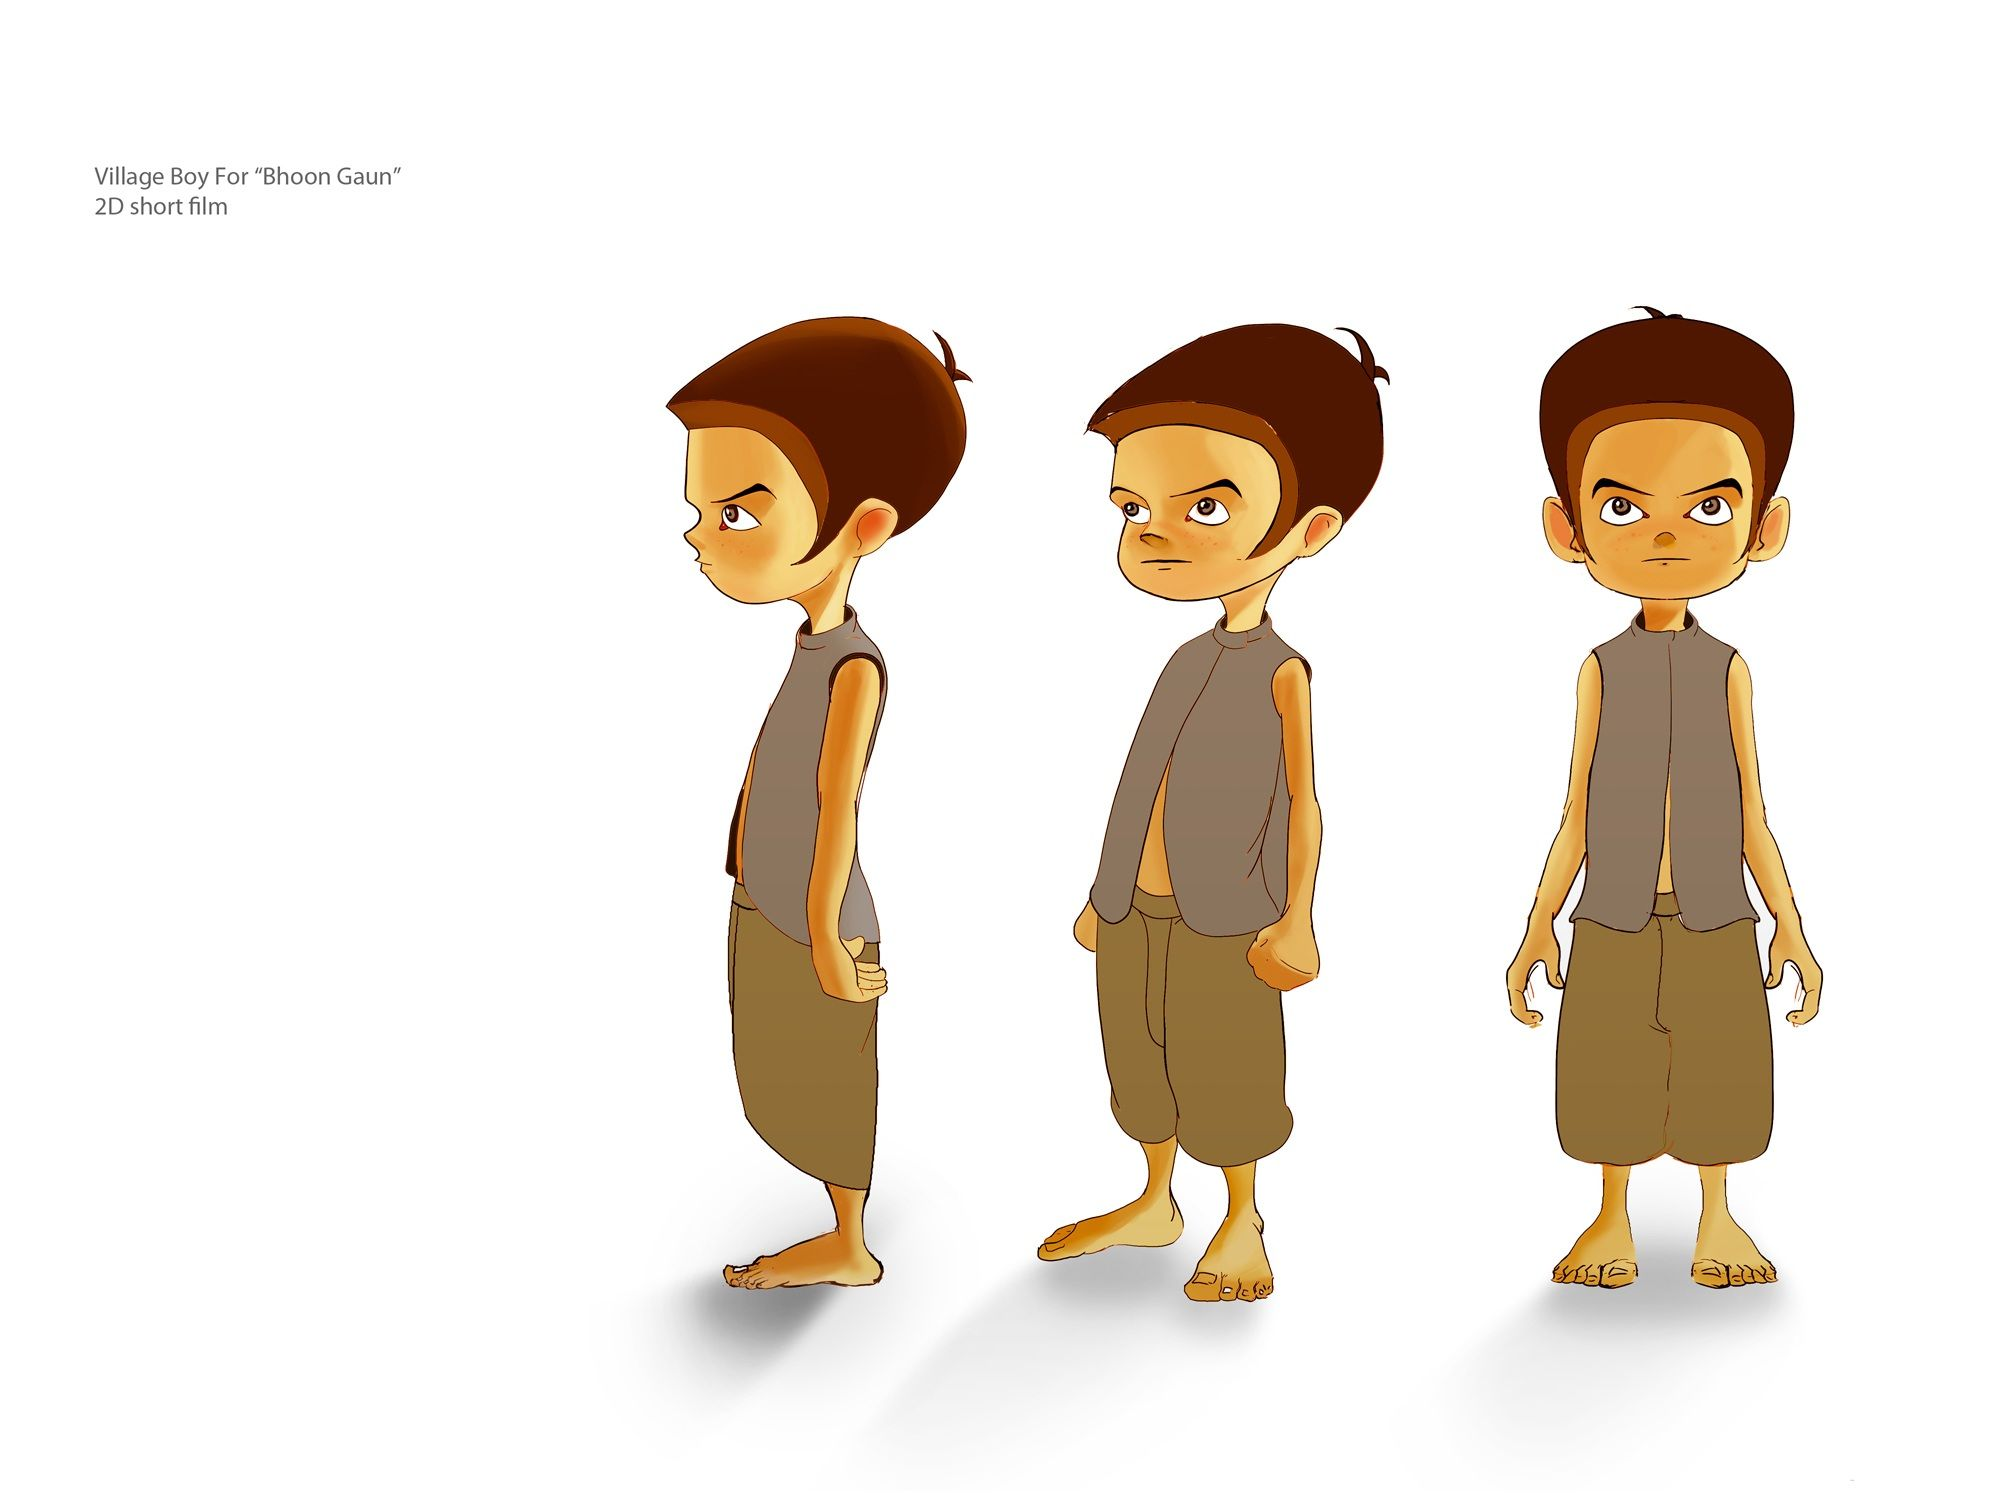 Character Design Vs Animation : Village kid character for d short film bhoot gaun